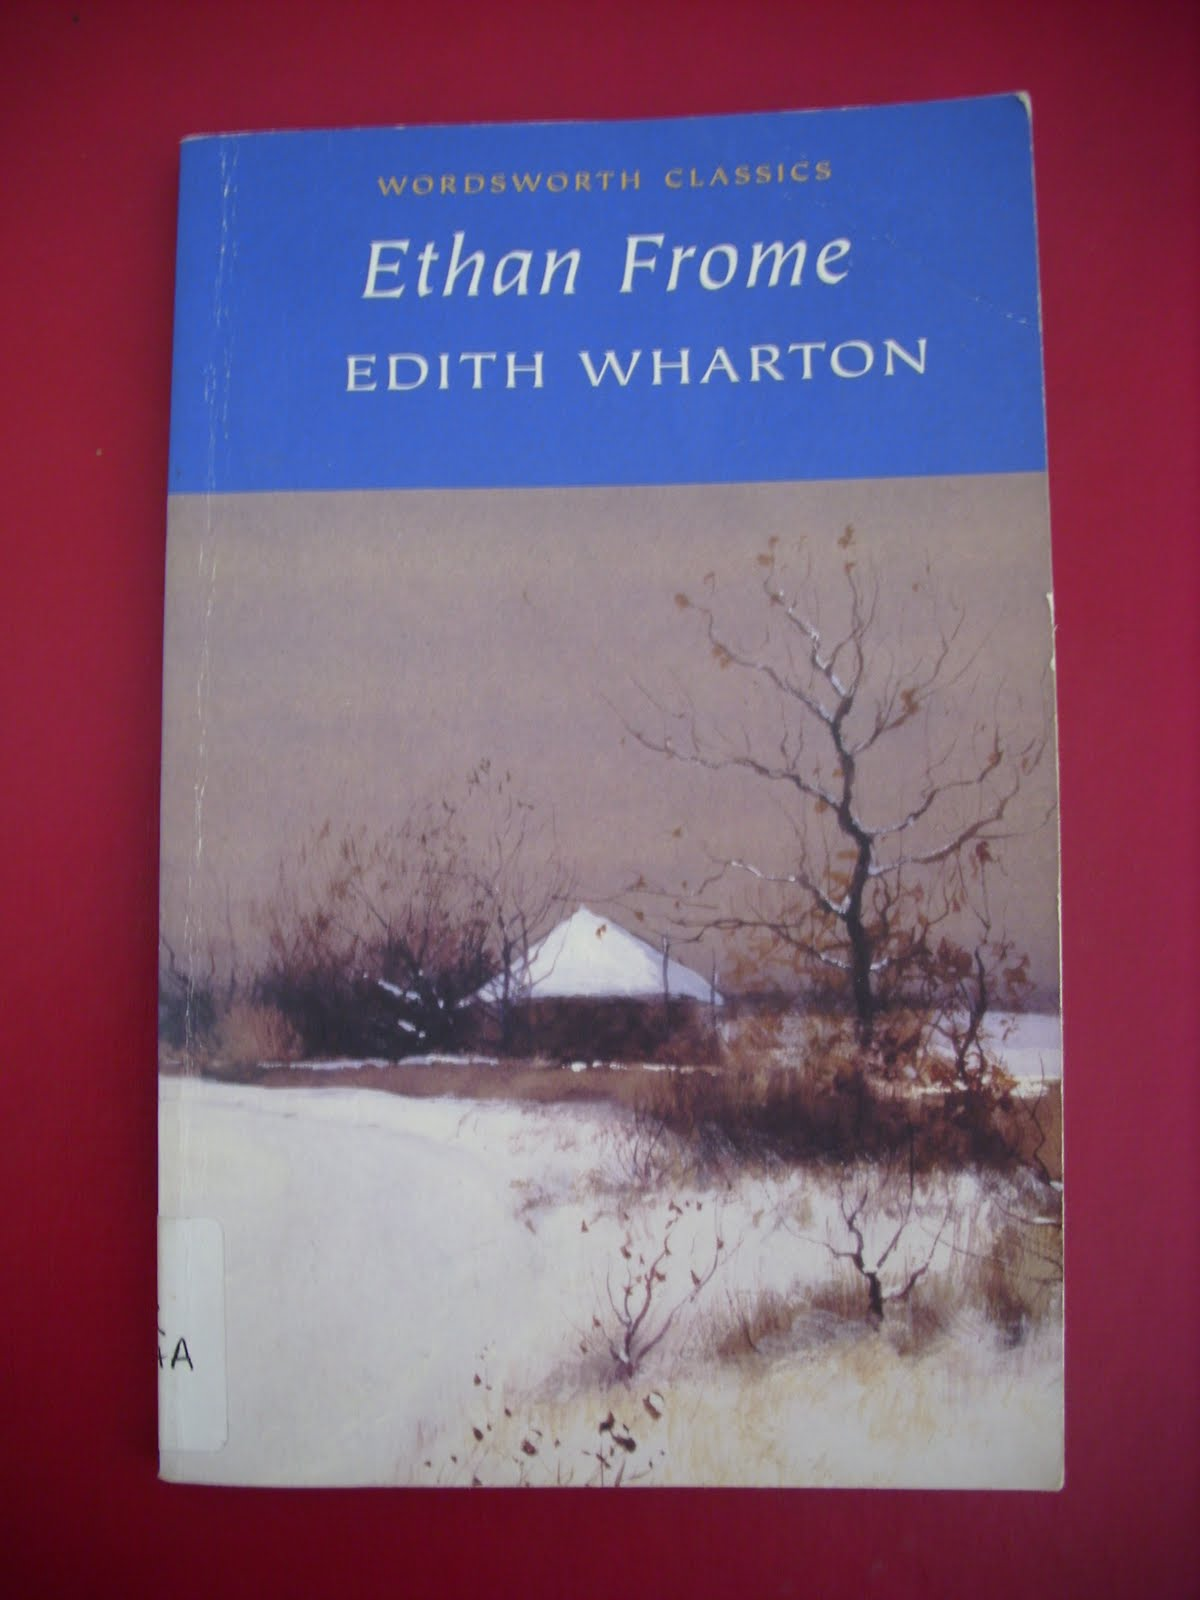 an analysis of edith whartons ethan frome Ethan frome is a book published in 1911 by the pulitzer prize-winning american author edith wharton it is set in the fictitious town of starkfield, massachusetts.